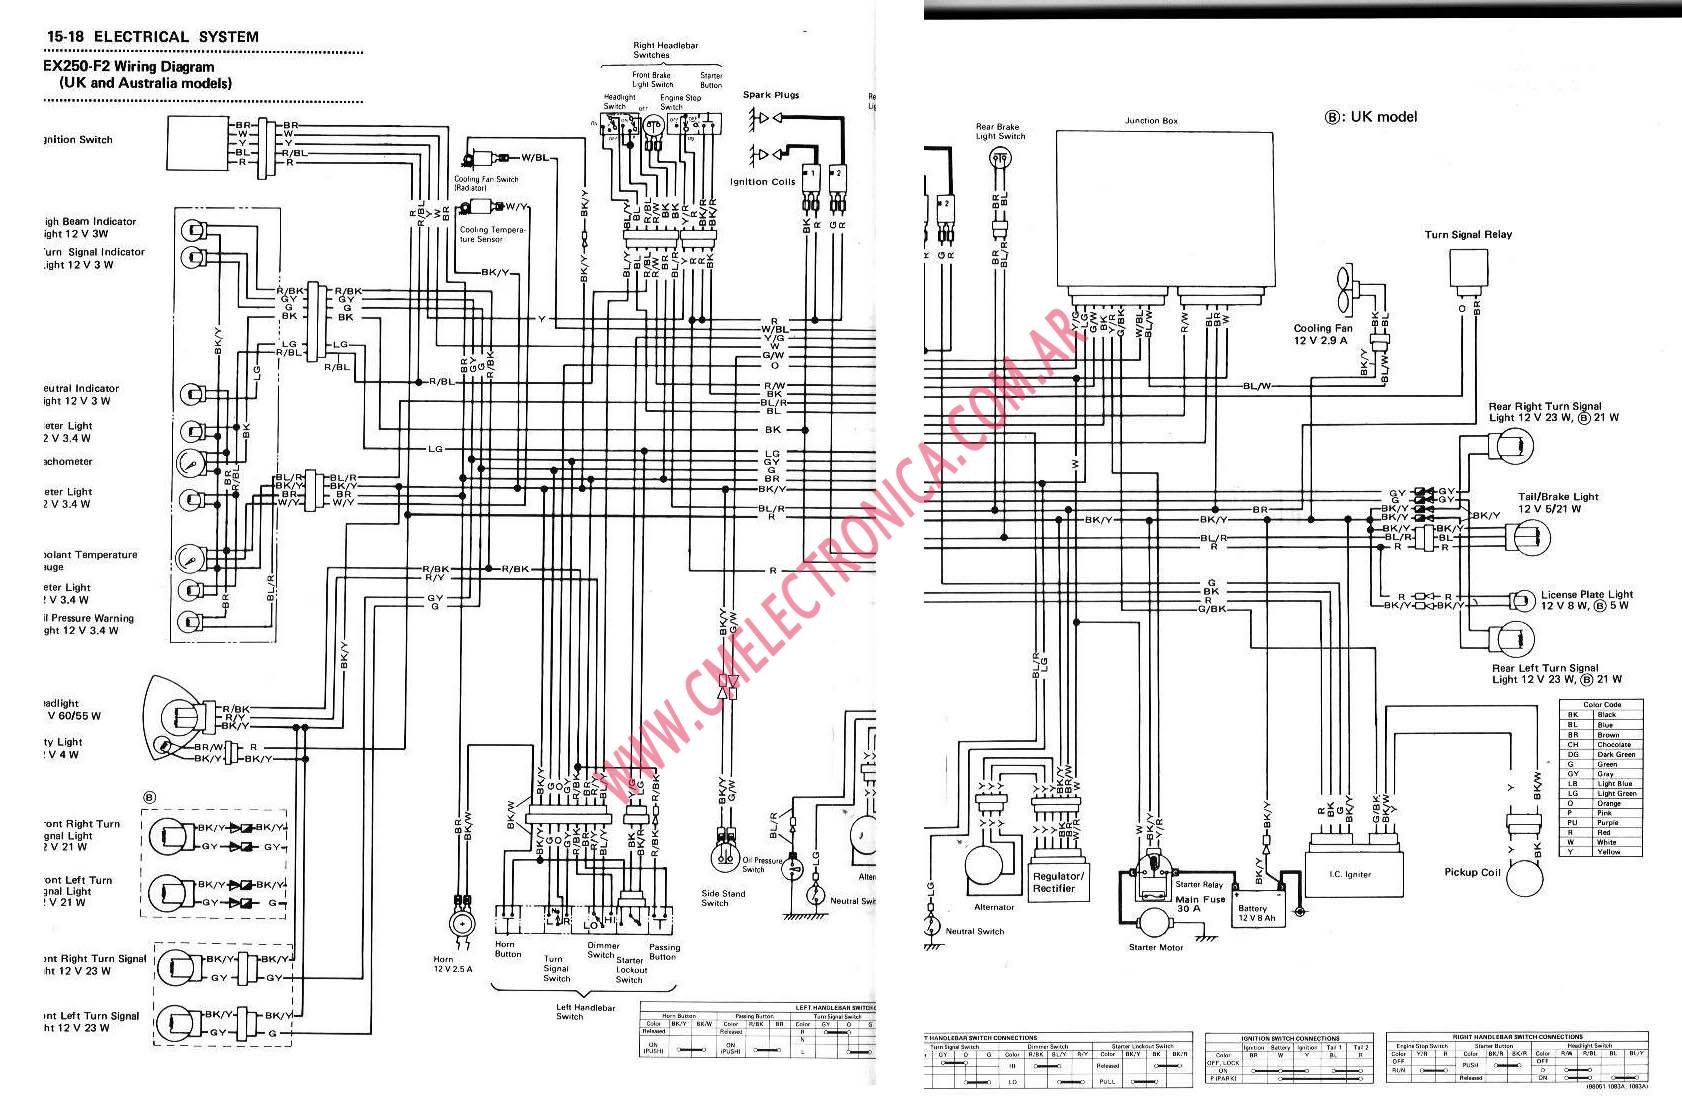 Kawasaki 220 Wiring Diagram | Wiring Diagram on triton trailer wiring diagram, kawasaki atv wiring diagram, kawasaki 4 wheeler wiring diagram, kawasaki 250 parts diagram, kawasaki ignition system wiring diagram, kawasaki 100 wiring diagram, klr 650 wiring diagram, kawasaki kz1000 wiring-diagram, kawasaki mojave 250, kawasaki motorcycle wiring diagrams, ezgo wiring diagram, kawasaki bayou 185 wiring-diagram, kawasaki mule wiring-diagram, kawasaki 500 wiring diagram, suzuki marauder wiring diagram, kawasaki 750 wiring diagram, kawasaki bayou 300 wiring diagram, kawasaki 400 wiring diagram, kawasaki bayou 220 wiring diagram, kawasaki engine wiring diagrams,